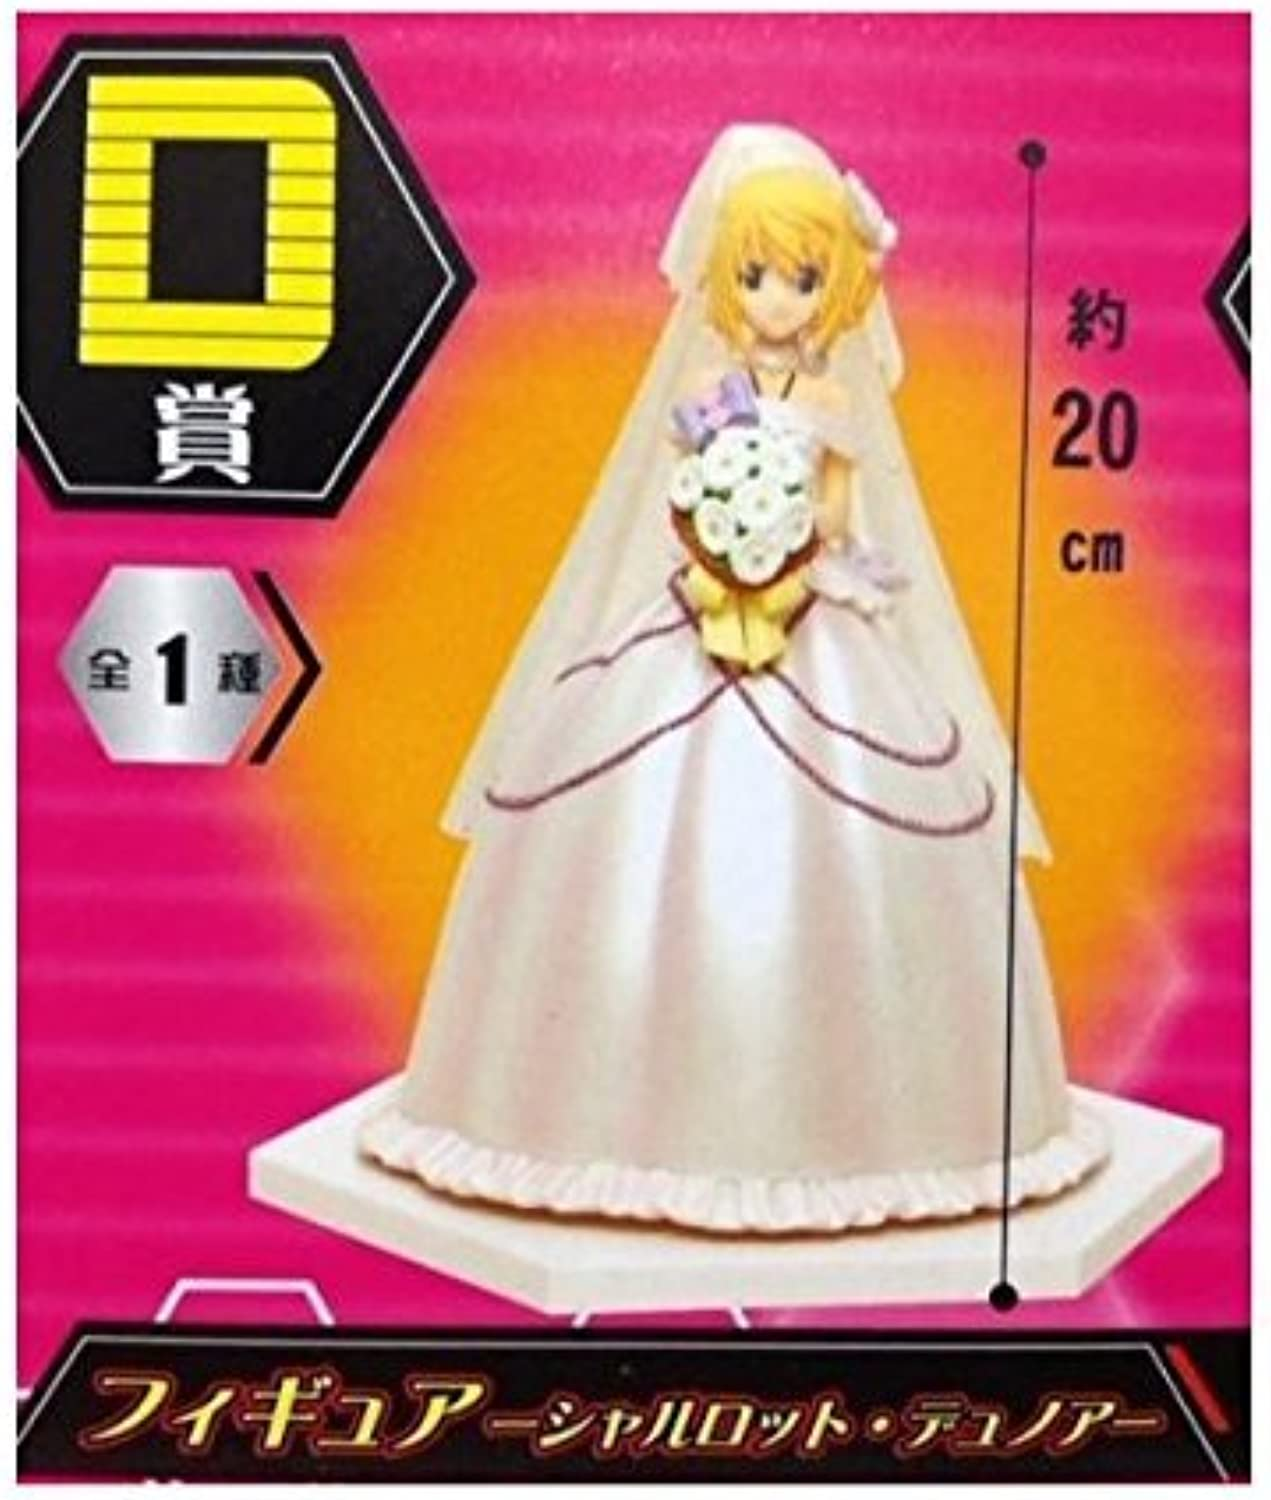 Taito lottery Honpo ISInfinite Stratos D Award figure Charlotte Dunois (japan import)